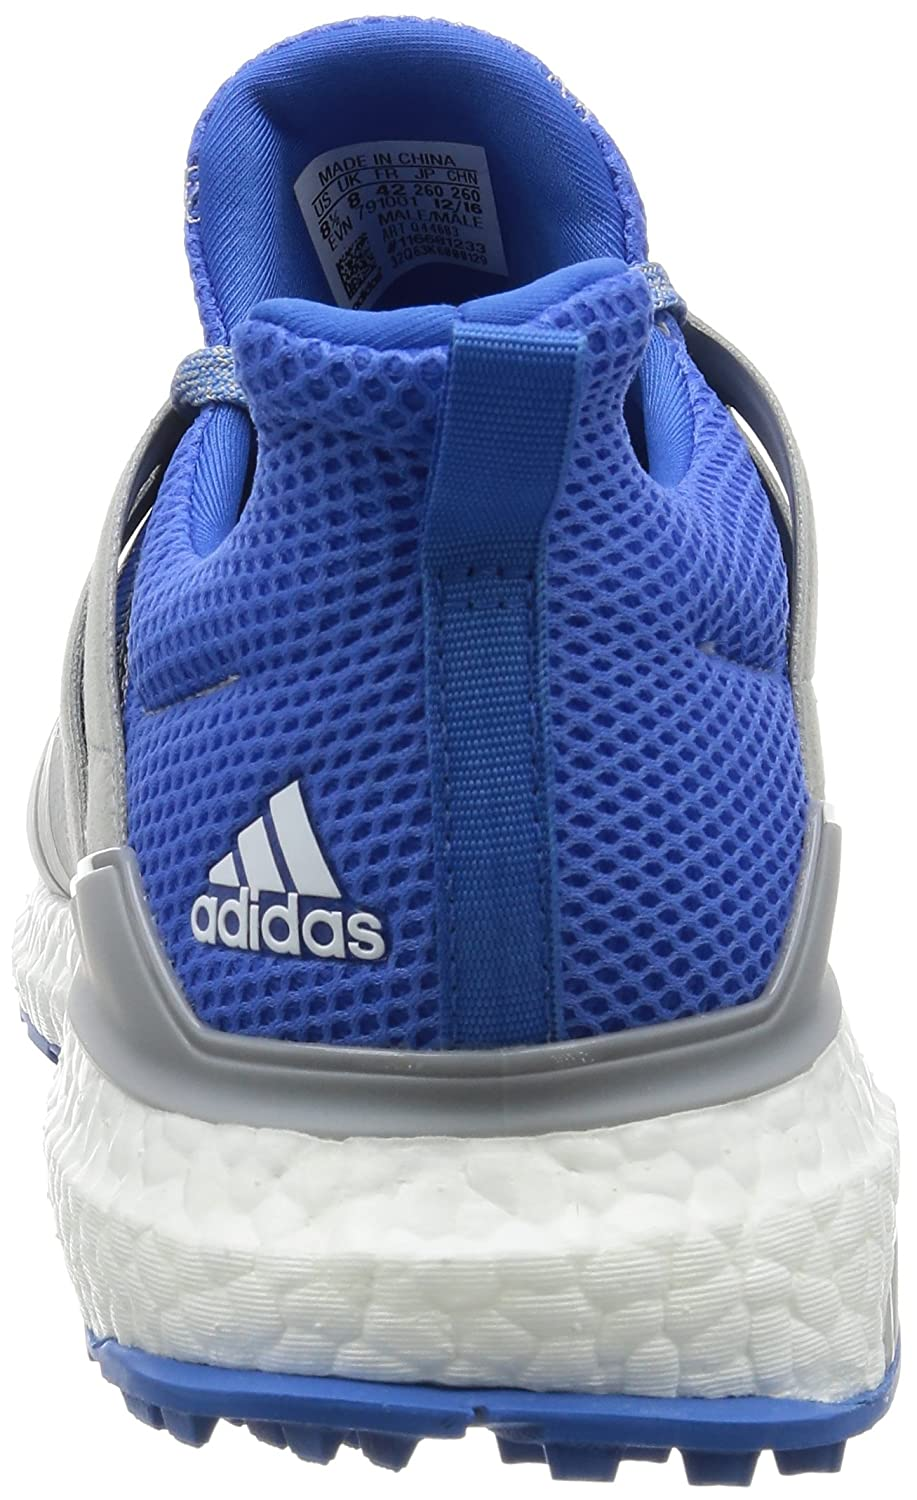 separation shoes 536b4 01950 adidas Crossknit Boost Golf Schuhe, Herren, Herren, Crossknit Boost,  Grauweiß, 40.6 Amazon.de Sport  Freizeit